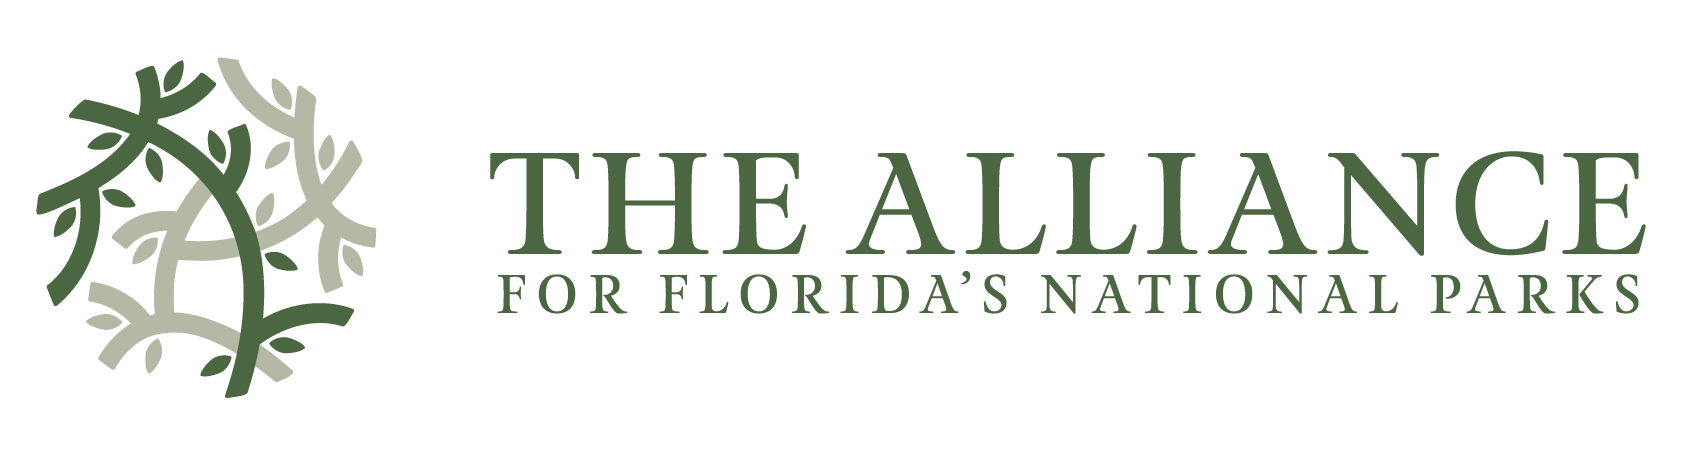 The Alliance for Florida's National Parks